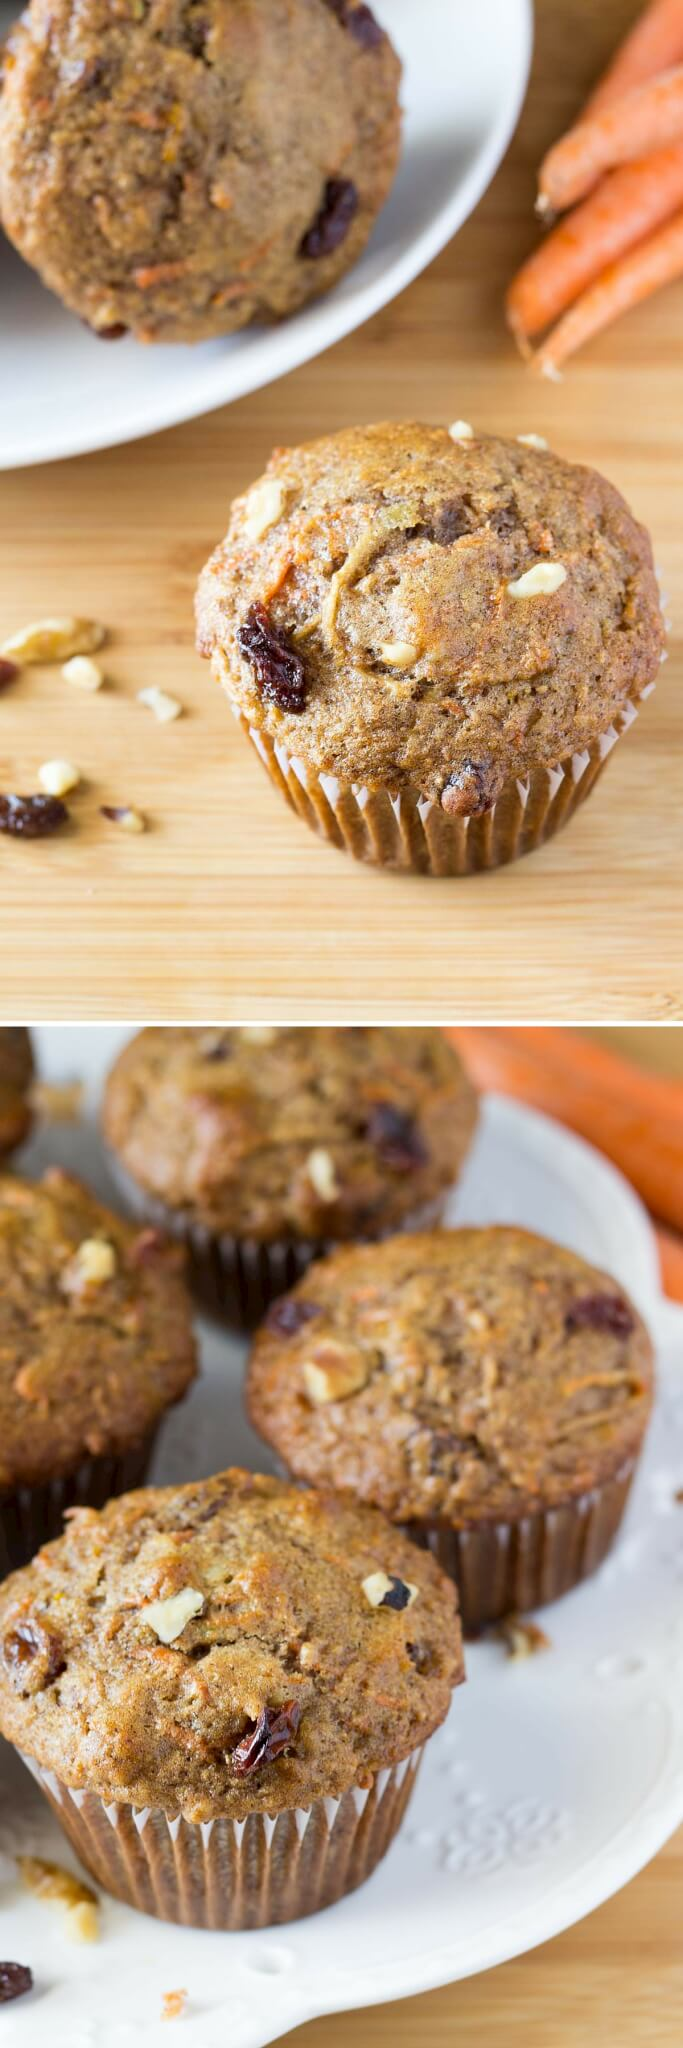 With shredded carrots, apple, cinnamon, orange zest, walnuts & raisins - these Morning Glory Muffins are packed with flavor and so easy to make.